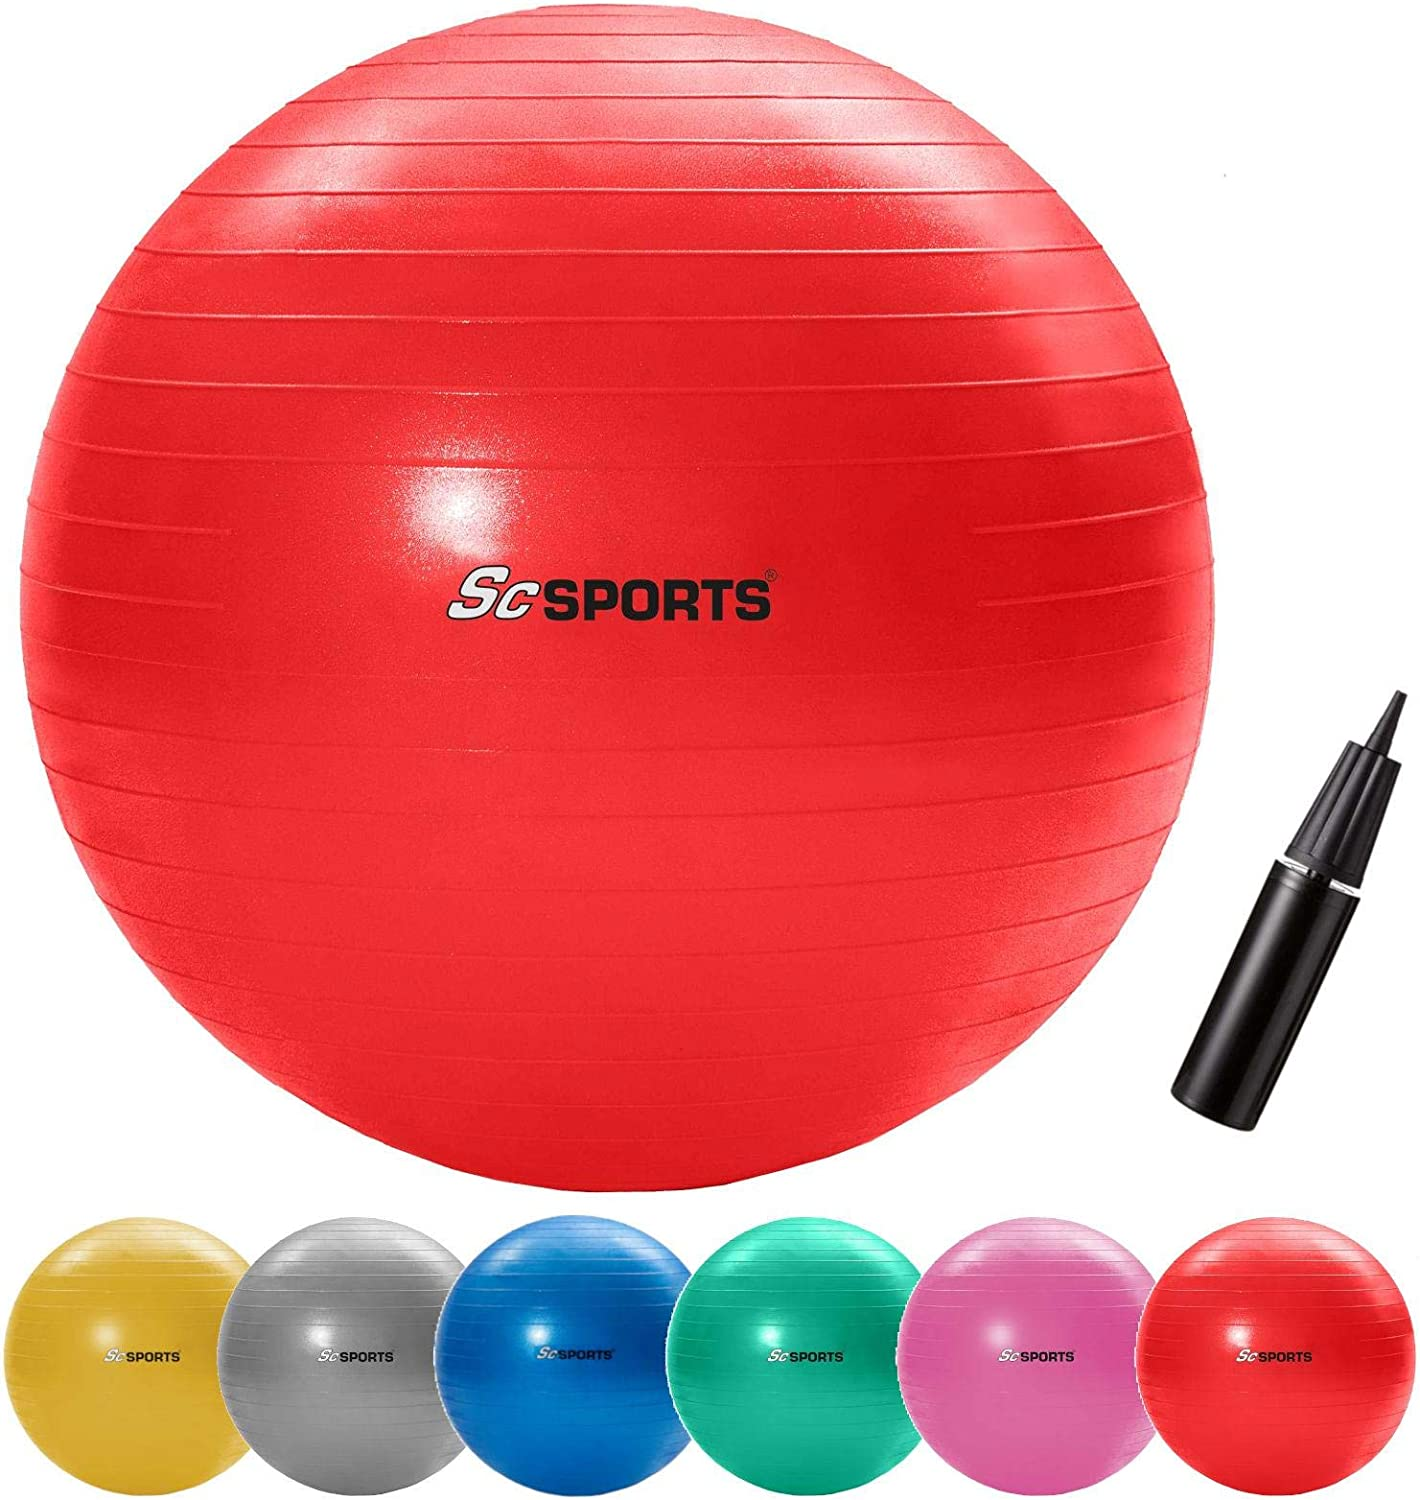 ScSPORTS Exercise Ball 65 CM, Red, 10000396